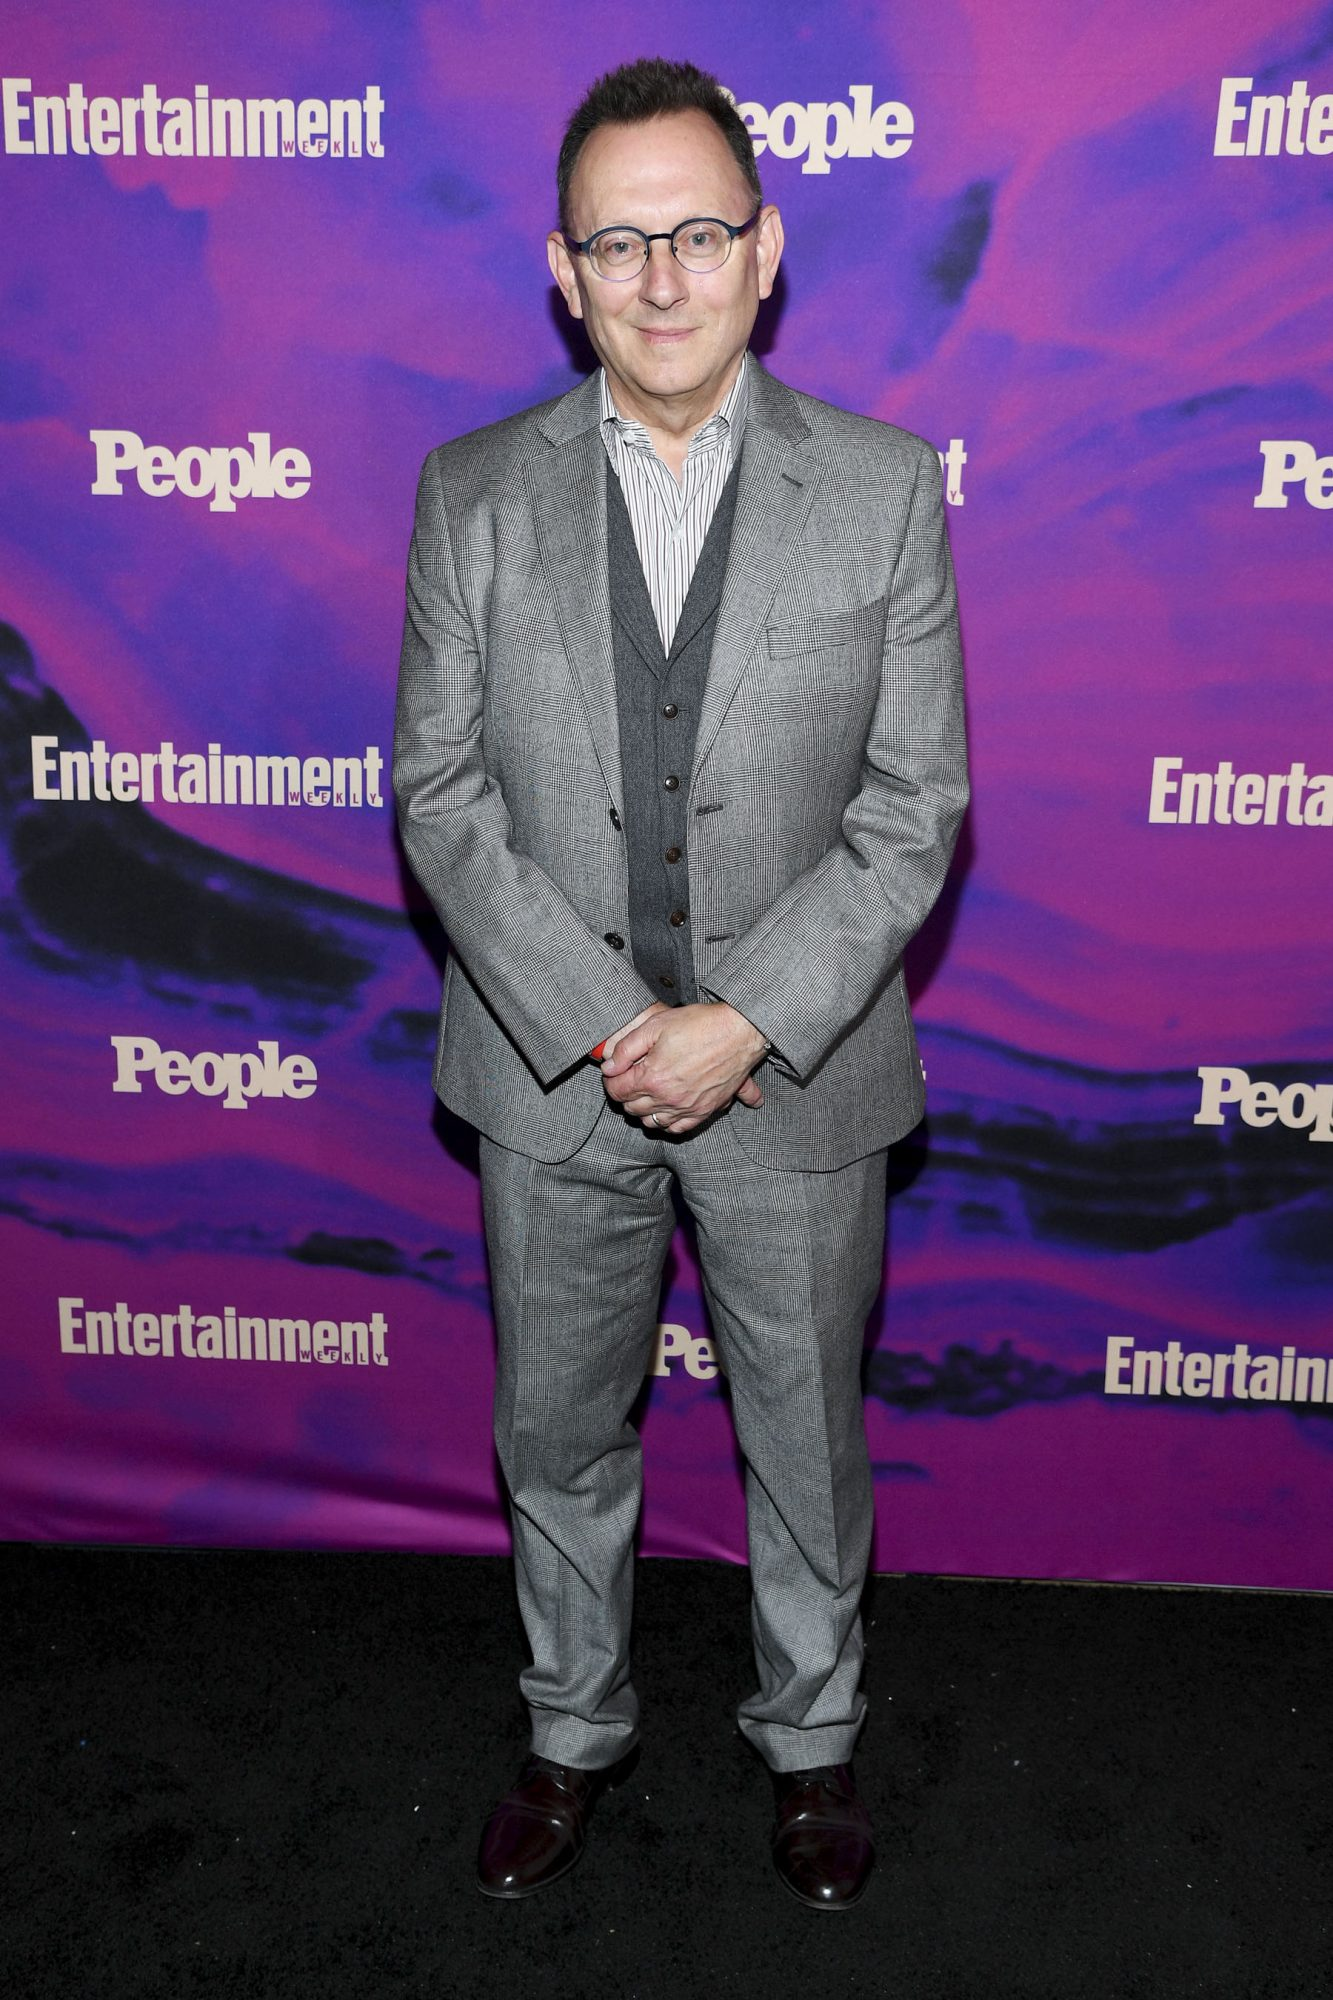 NEW YORK, NEW YORK - MAY 13: Michael Emerson of Evil attends the Entertainment Weekly & PEOPLE New York Upfronts Party on May 13, 2019 in New York City. (Photo by Dimitrios Kambouris/Getty Images for Entertainment Weekly & PEOPLE)